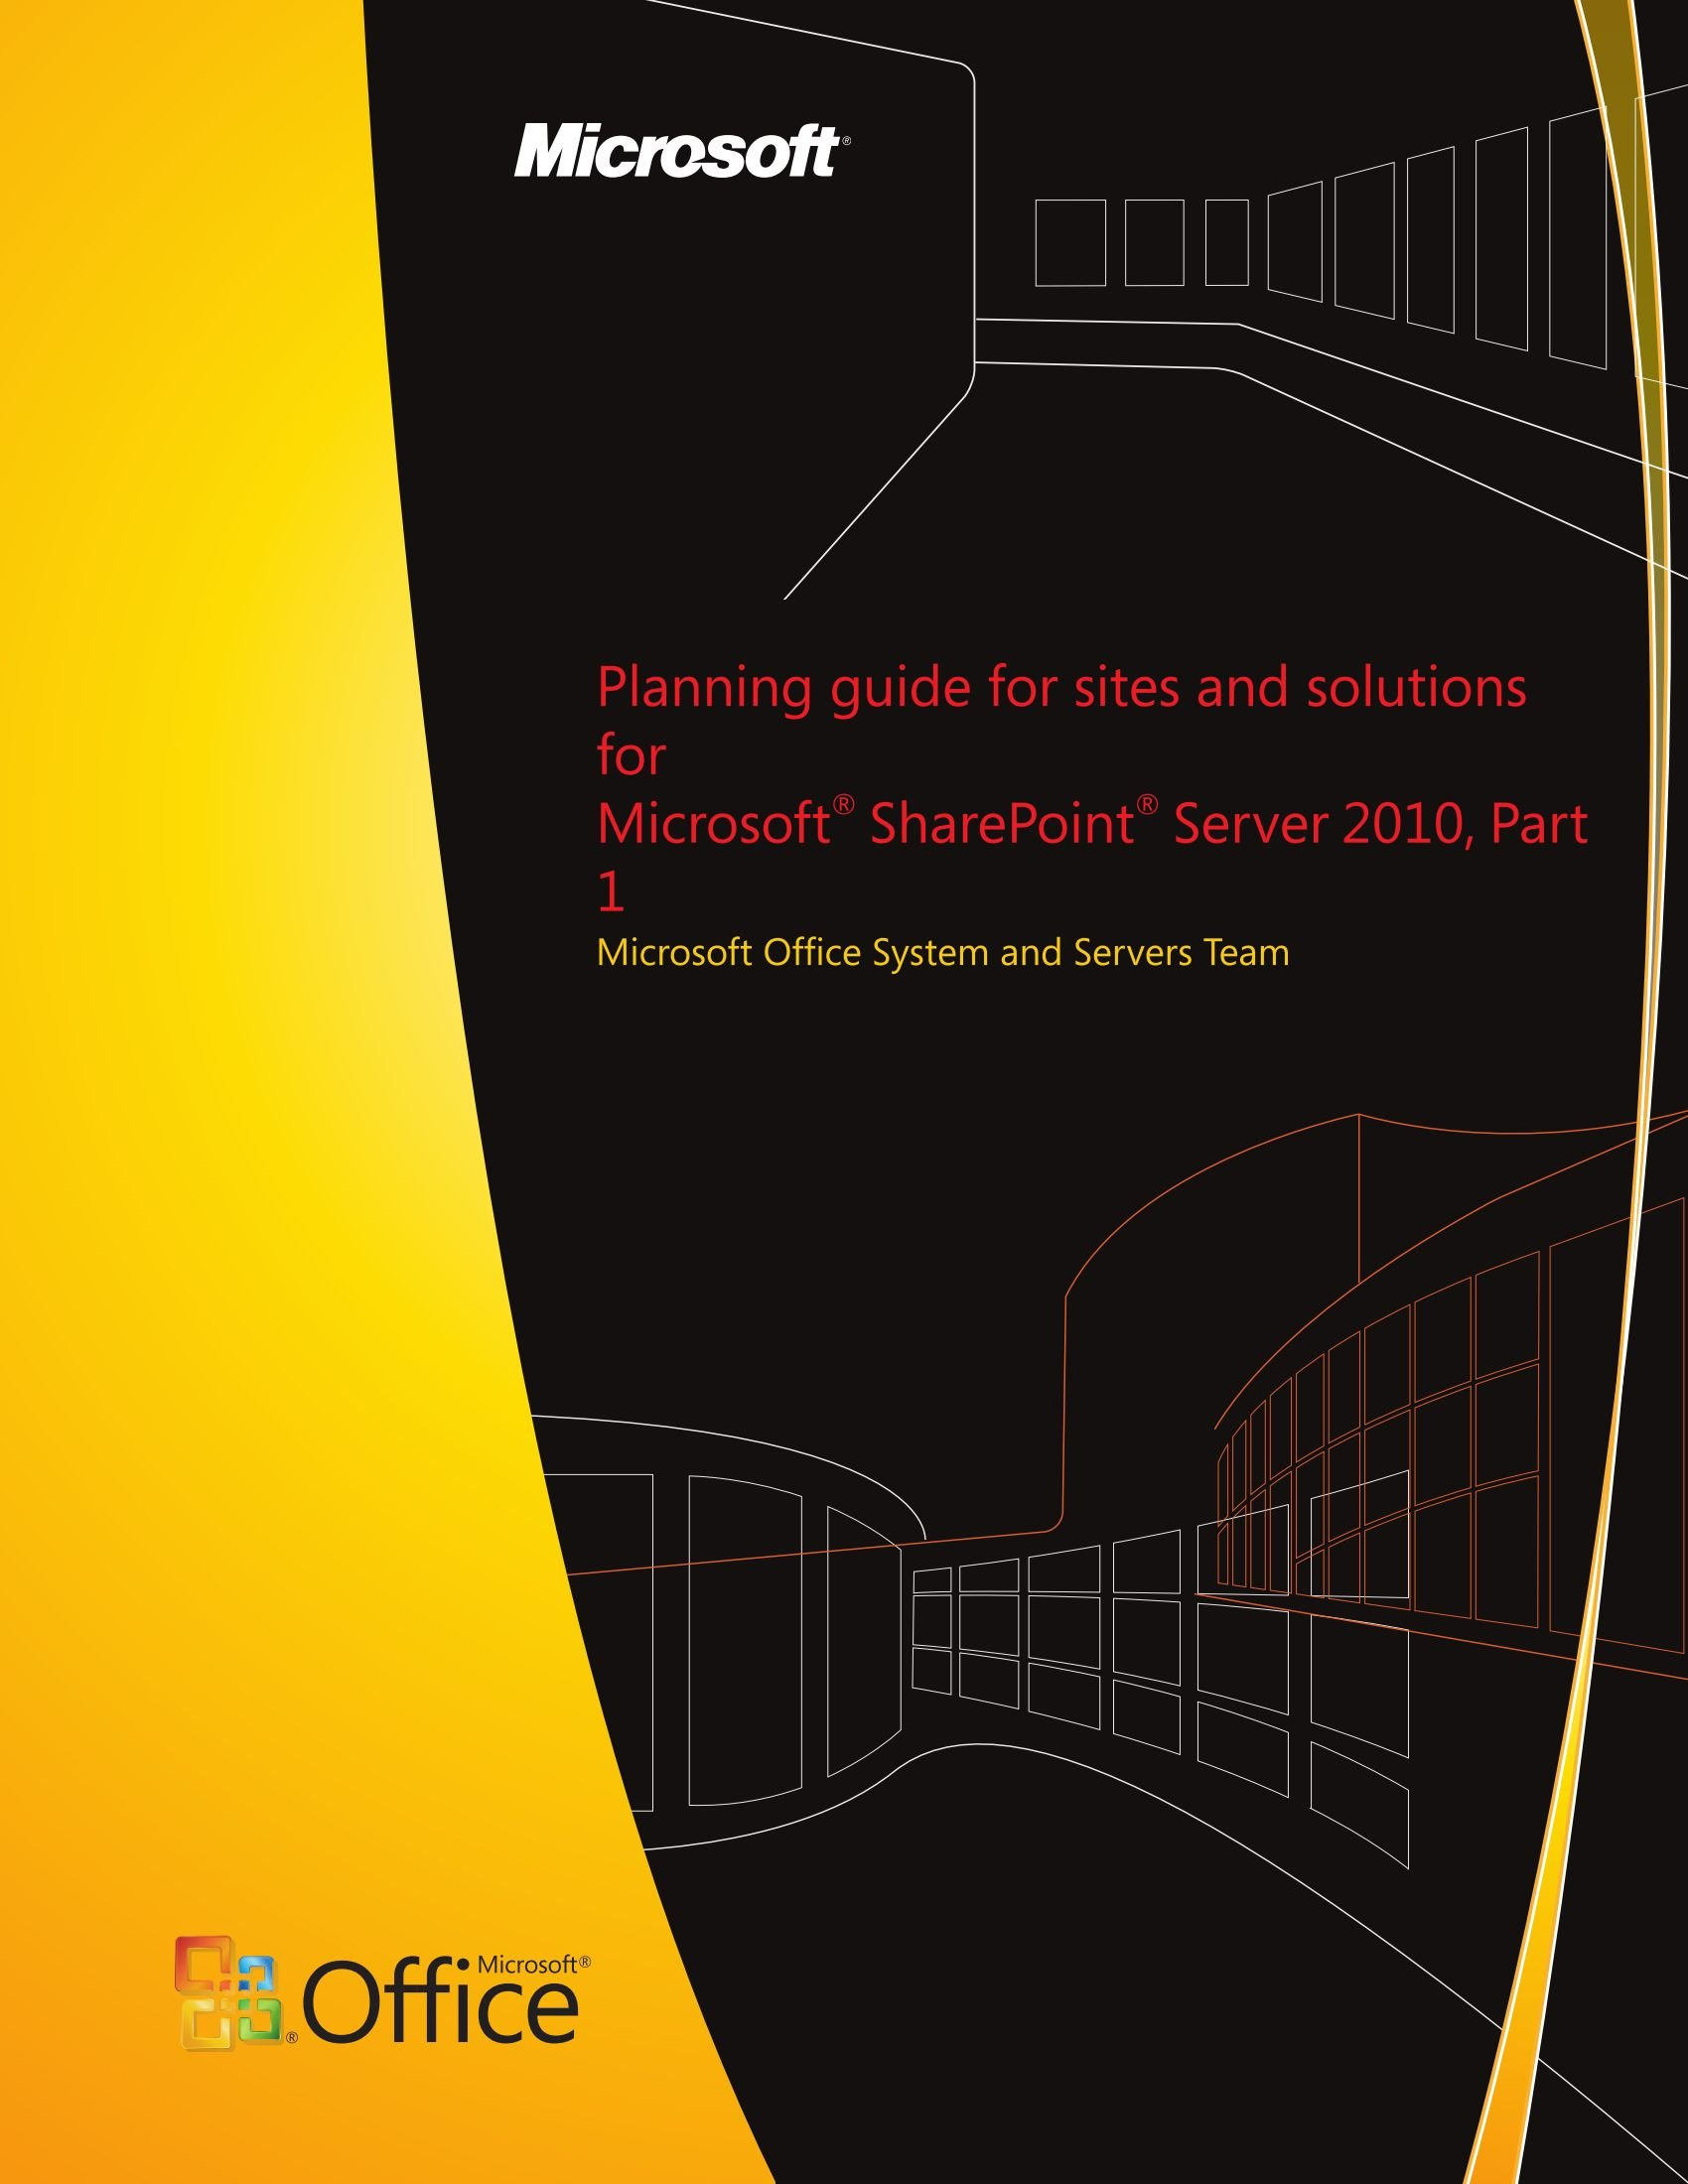 Planning guide for sites and solutions for Microsoft SharePoint Server 2010, Part 1